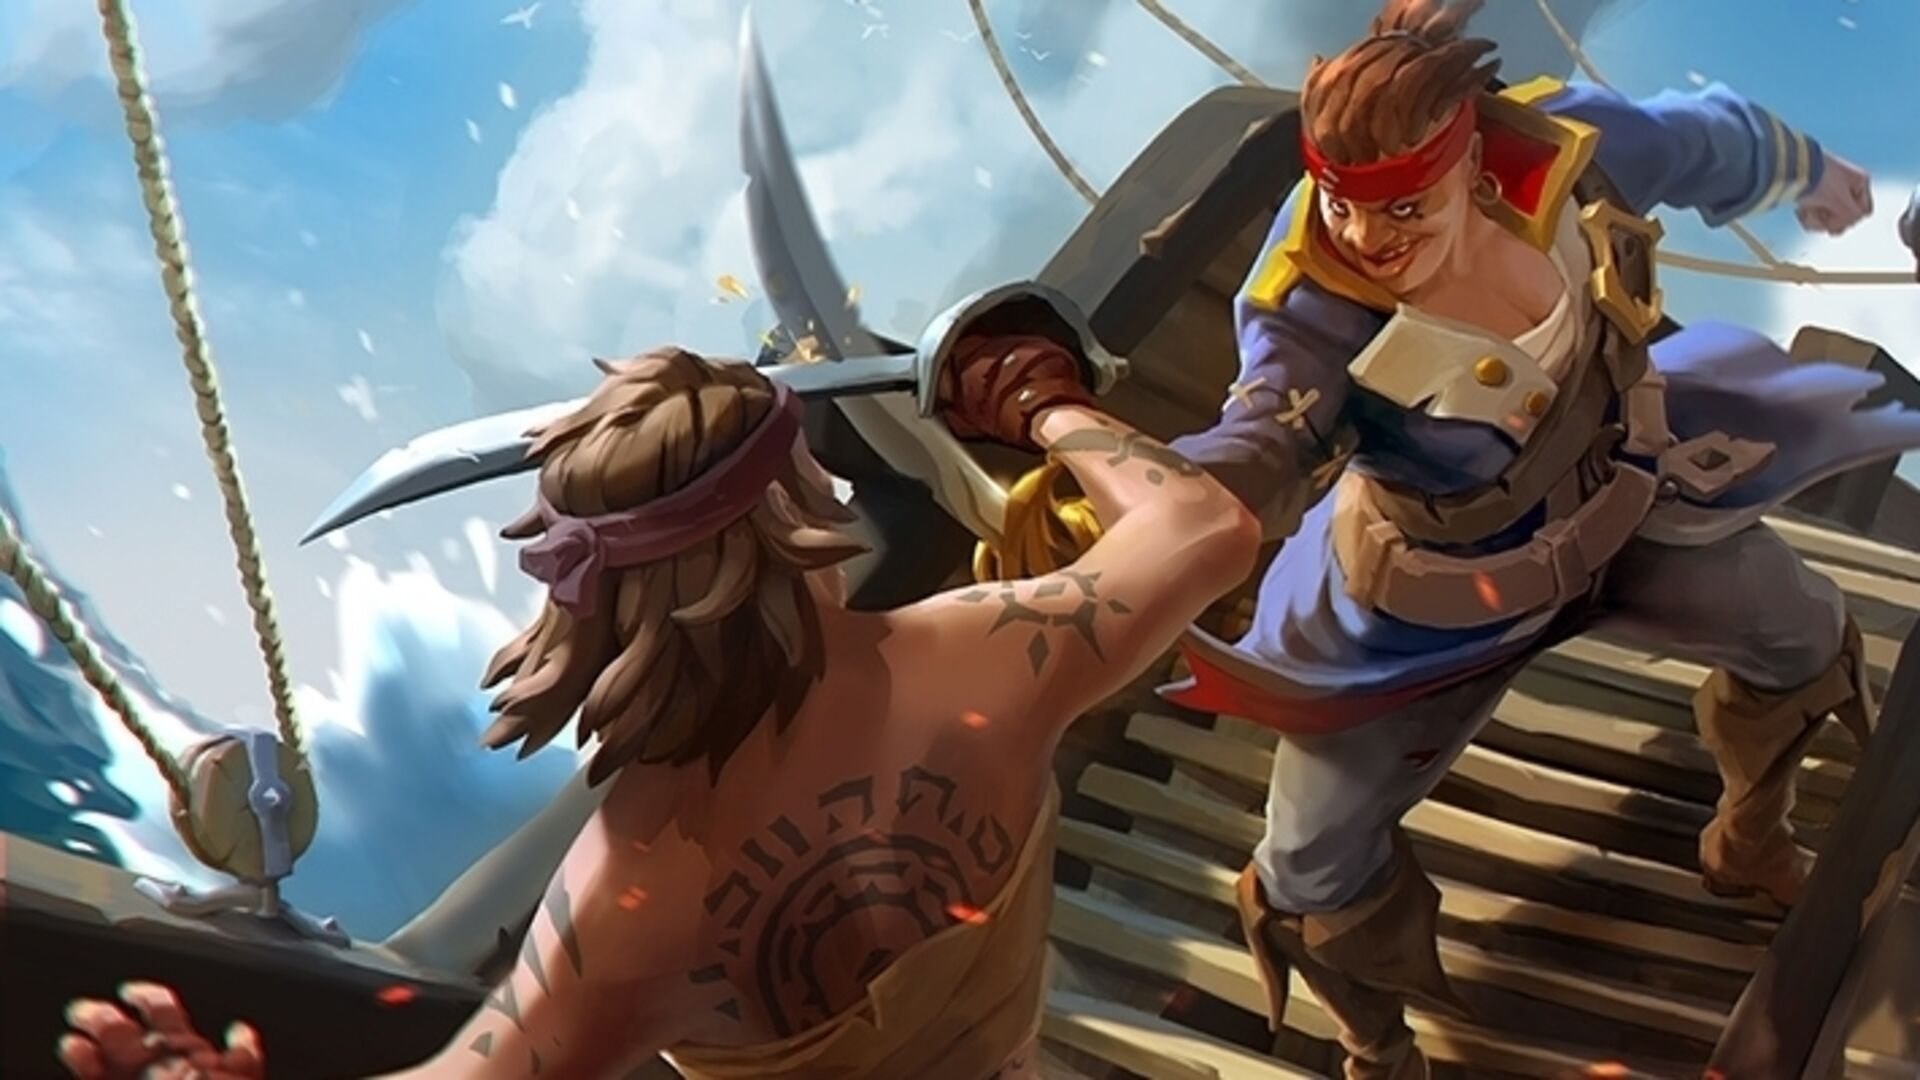 Sea of Thieves is currently half price ahead of this month's